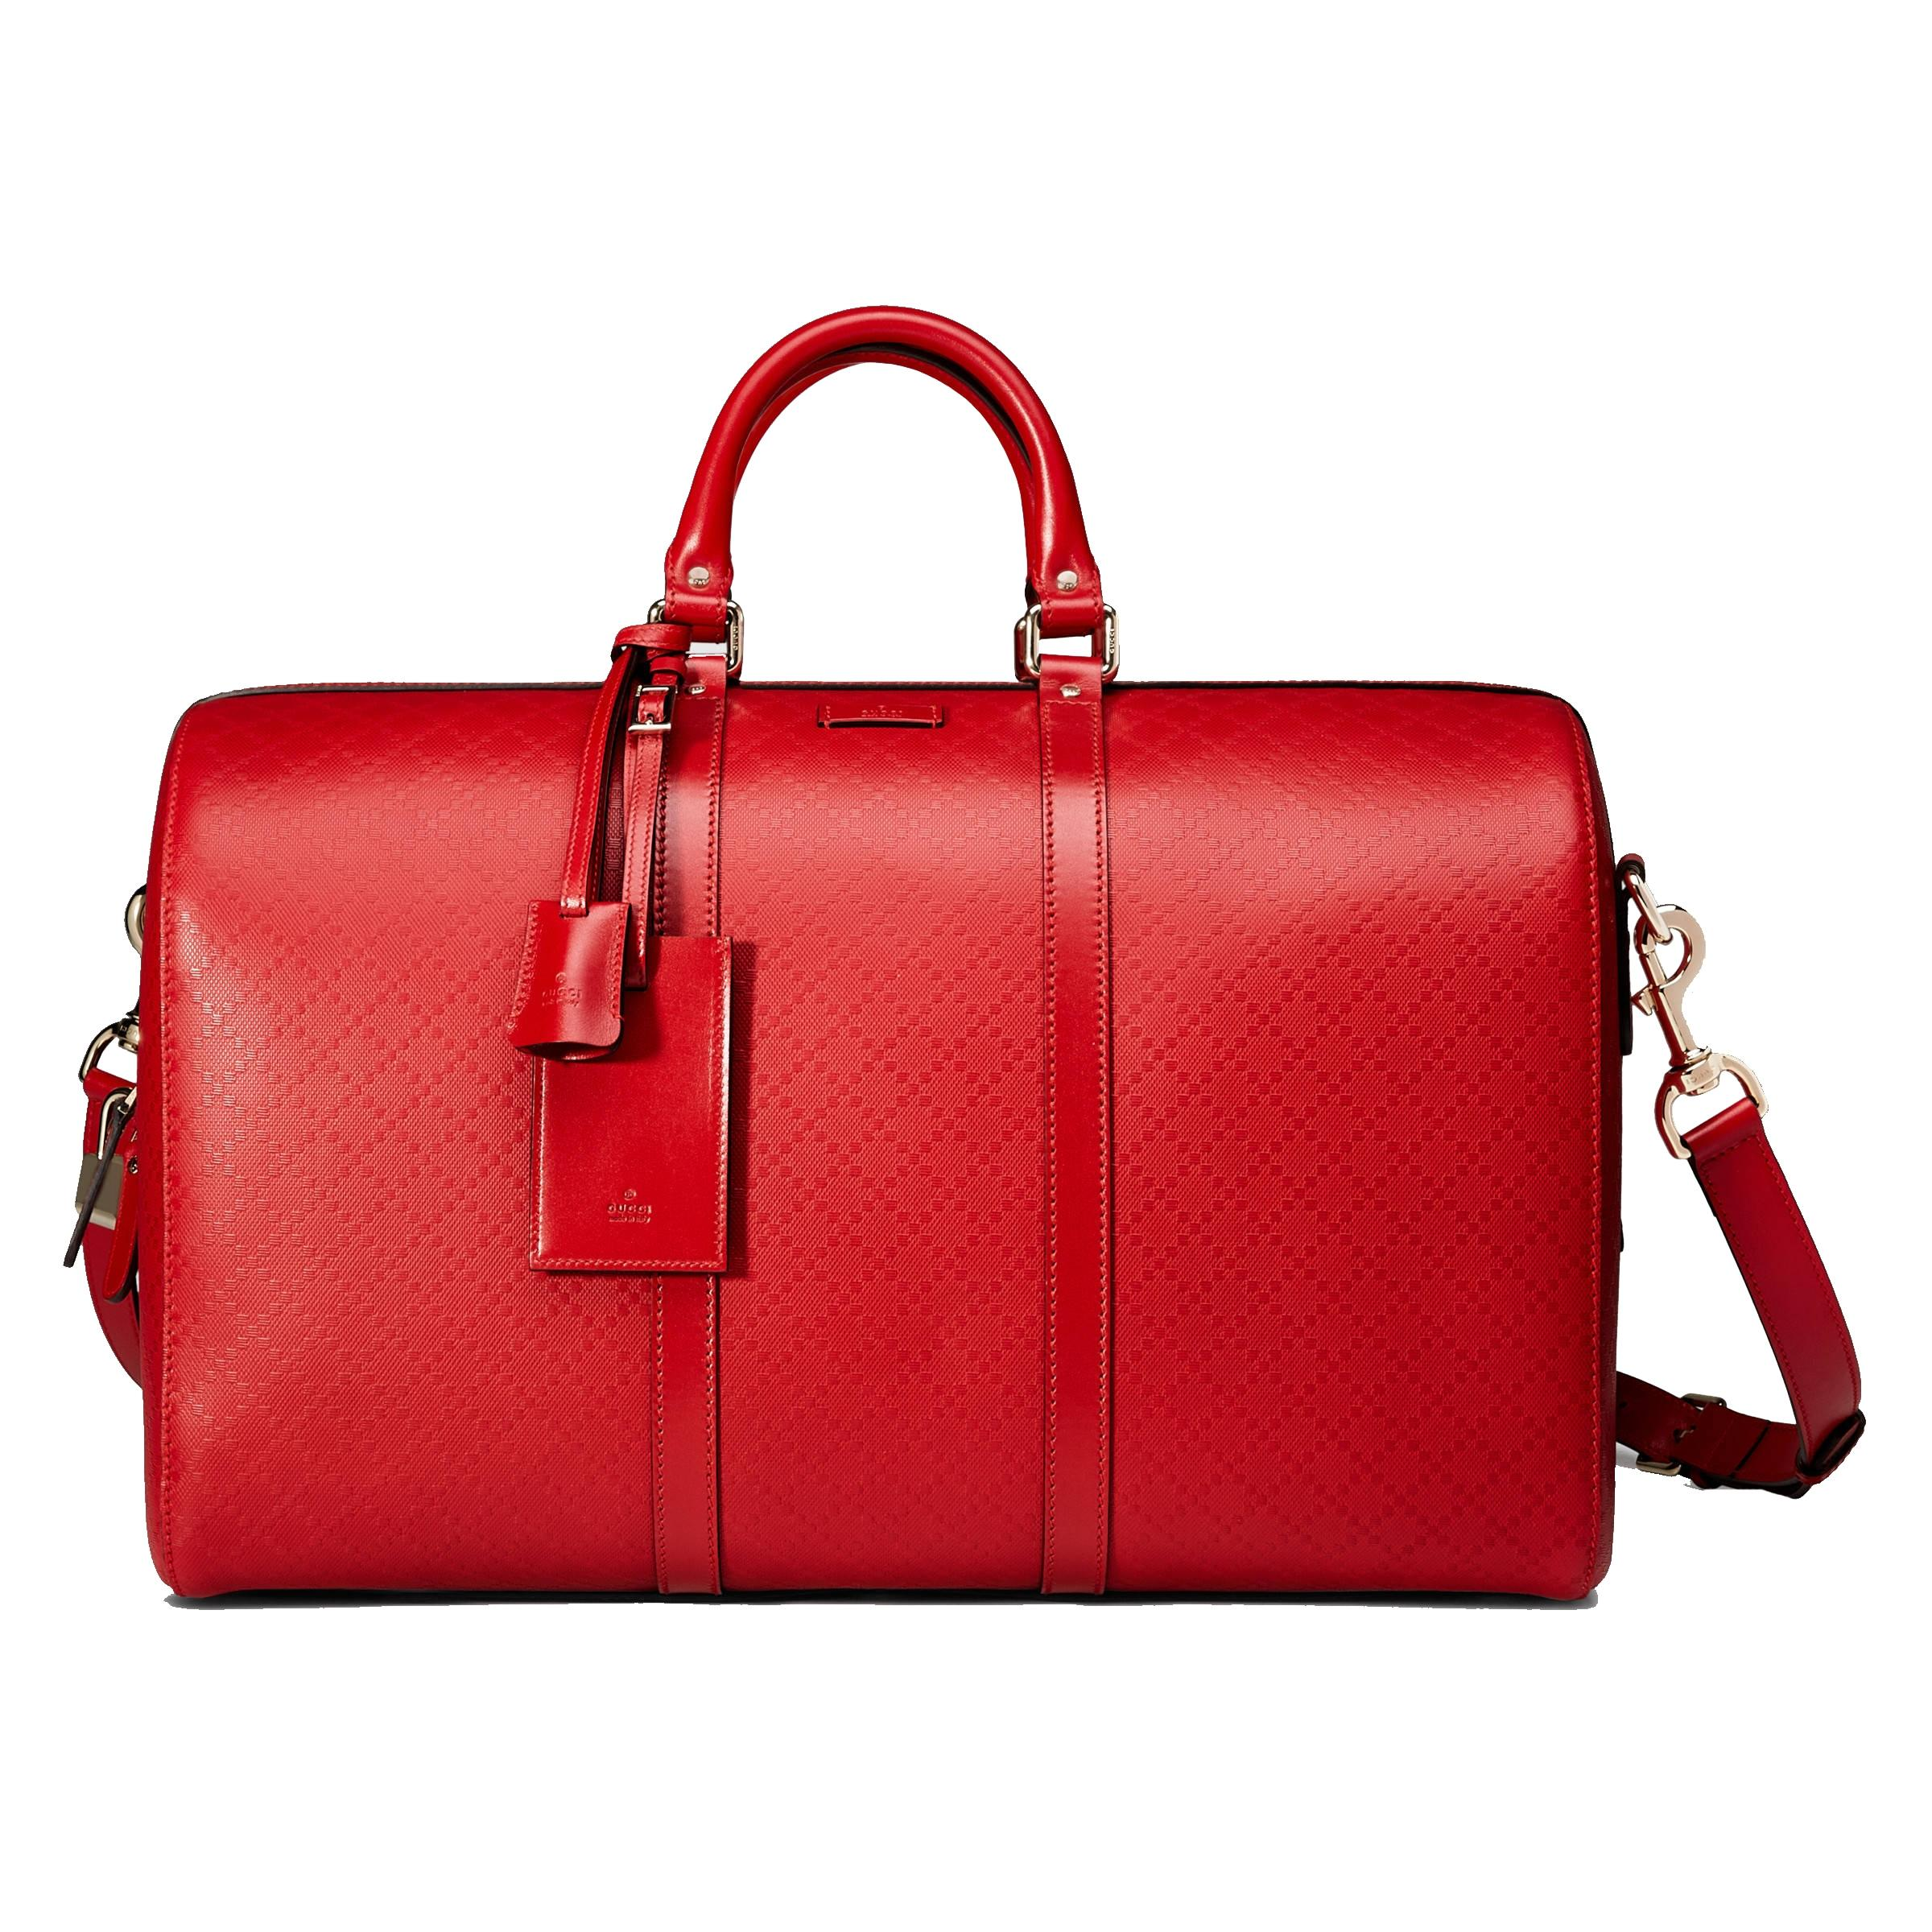 Gucci Diamante Hilary Lux Leather Duffle 355639 Tabasco Red Travel ...